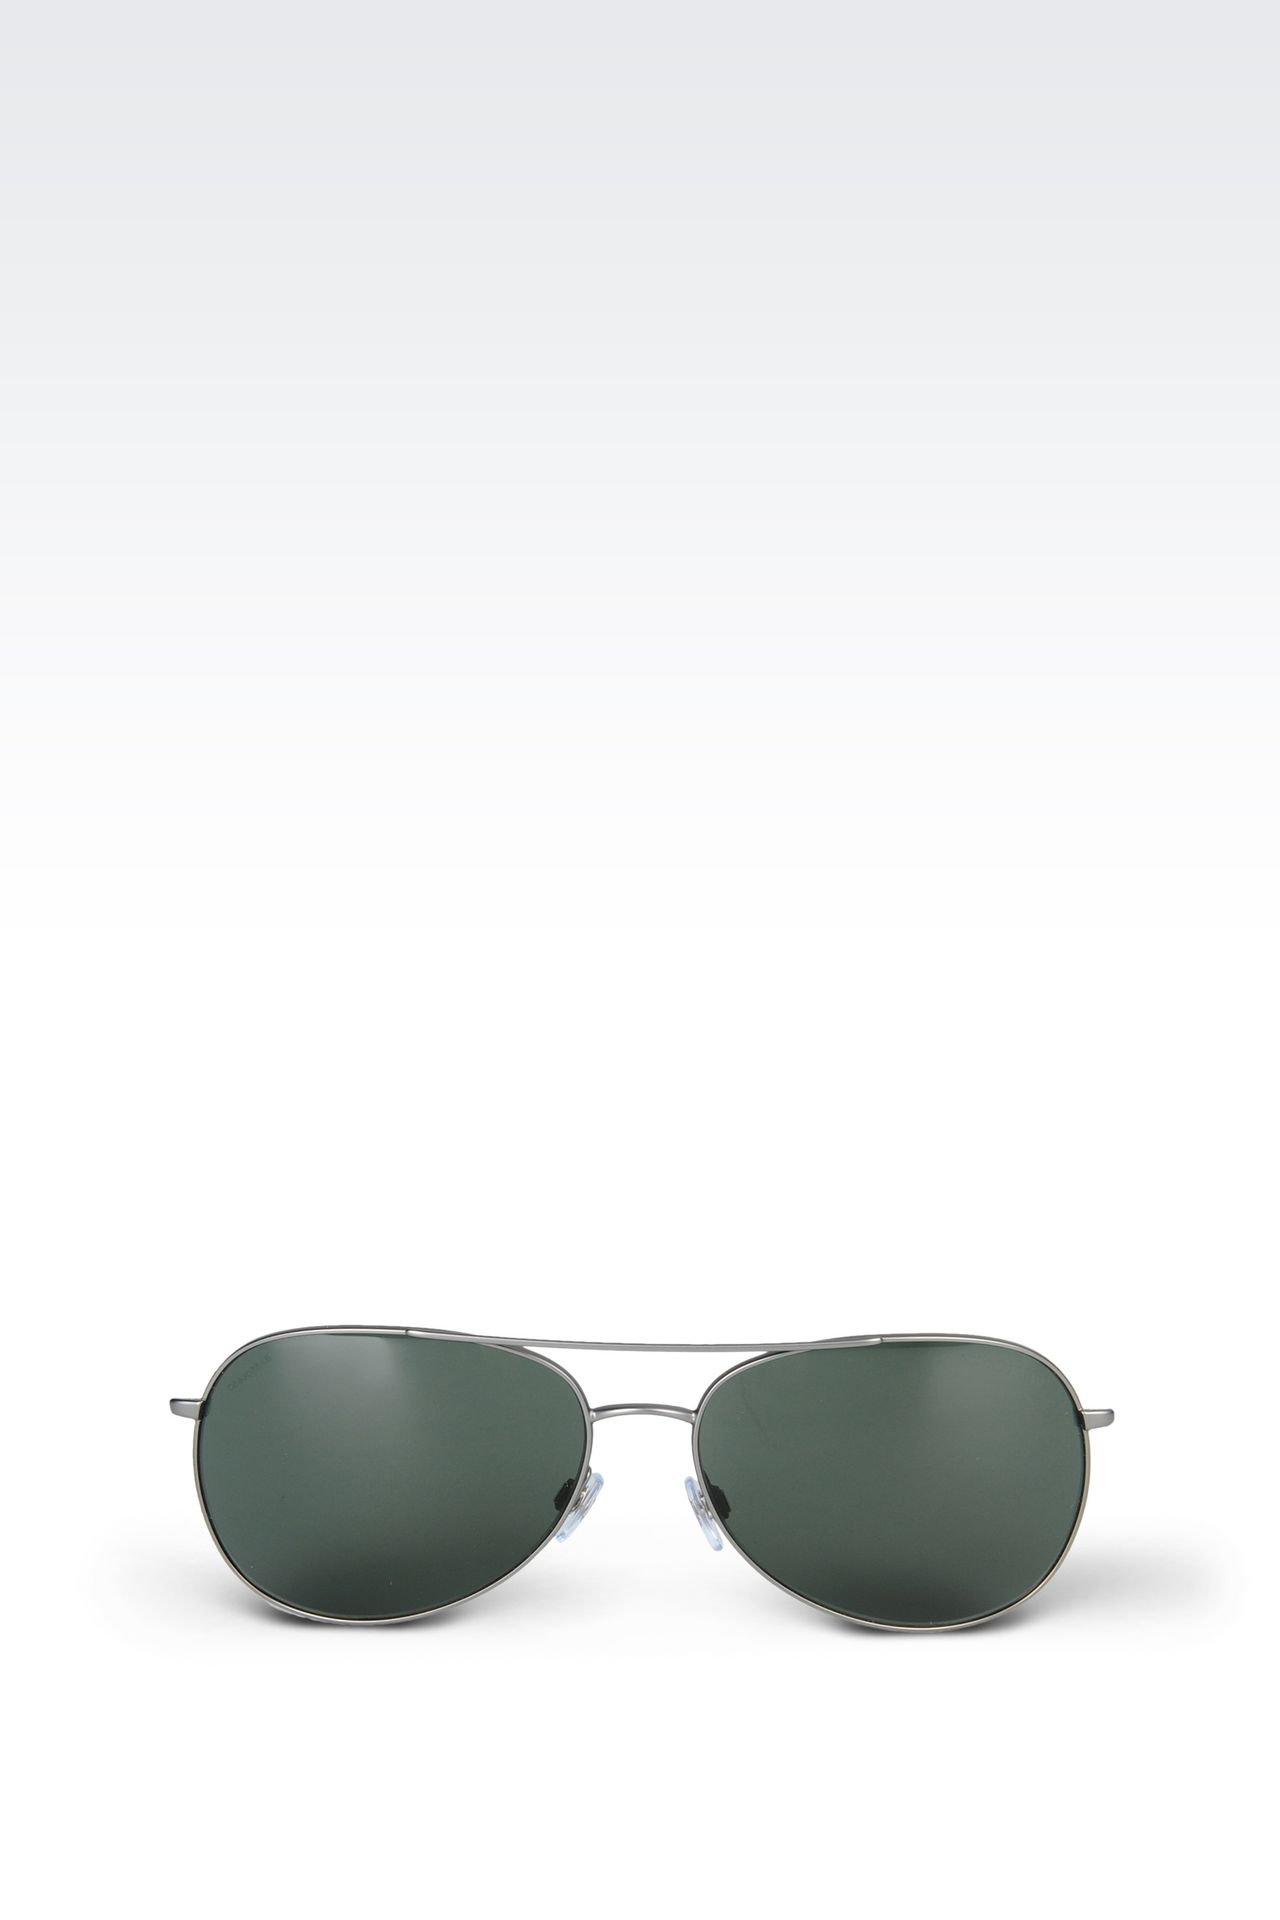 designer sunglasses for less  collection sunglasses